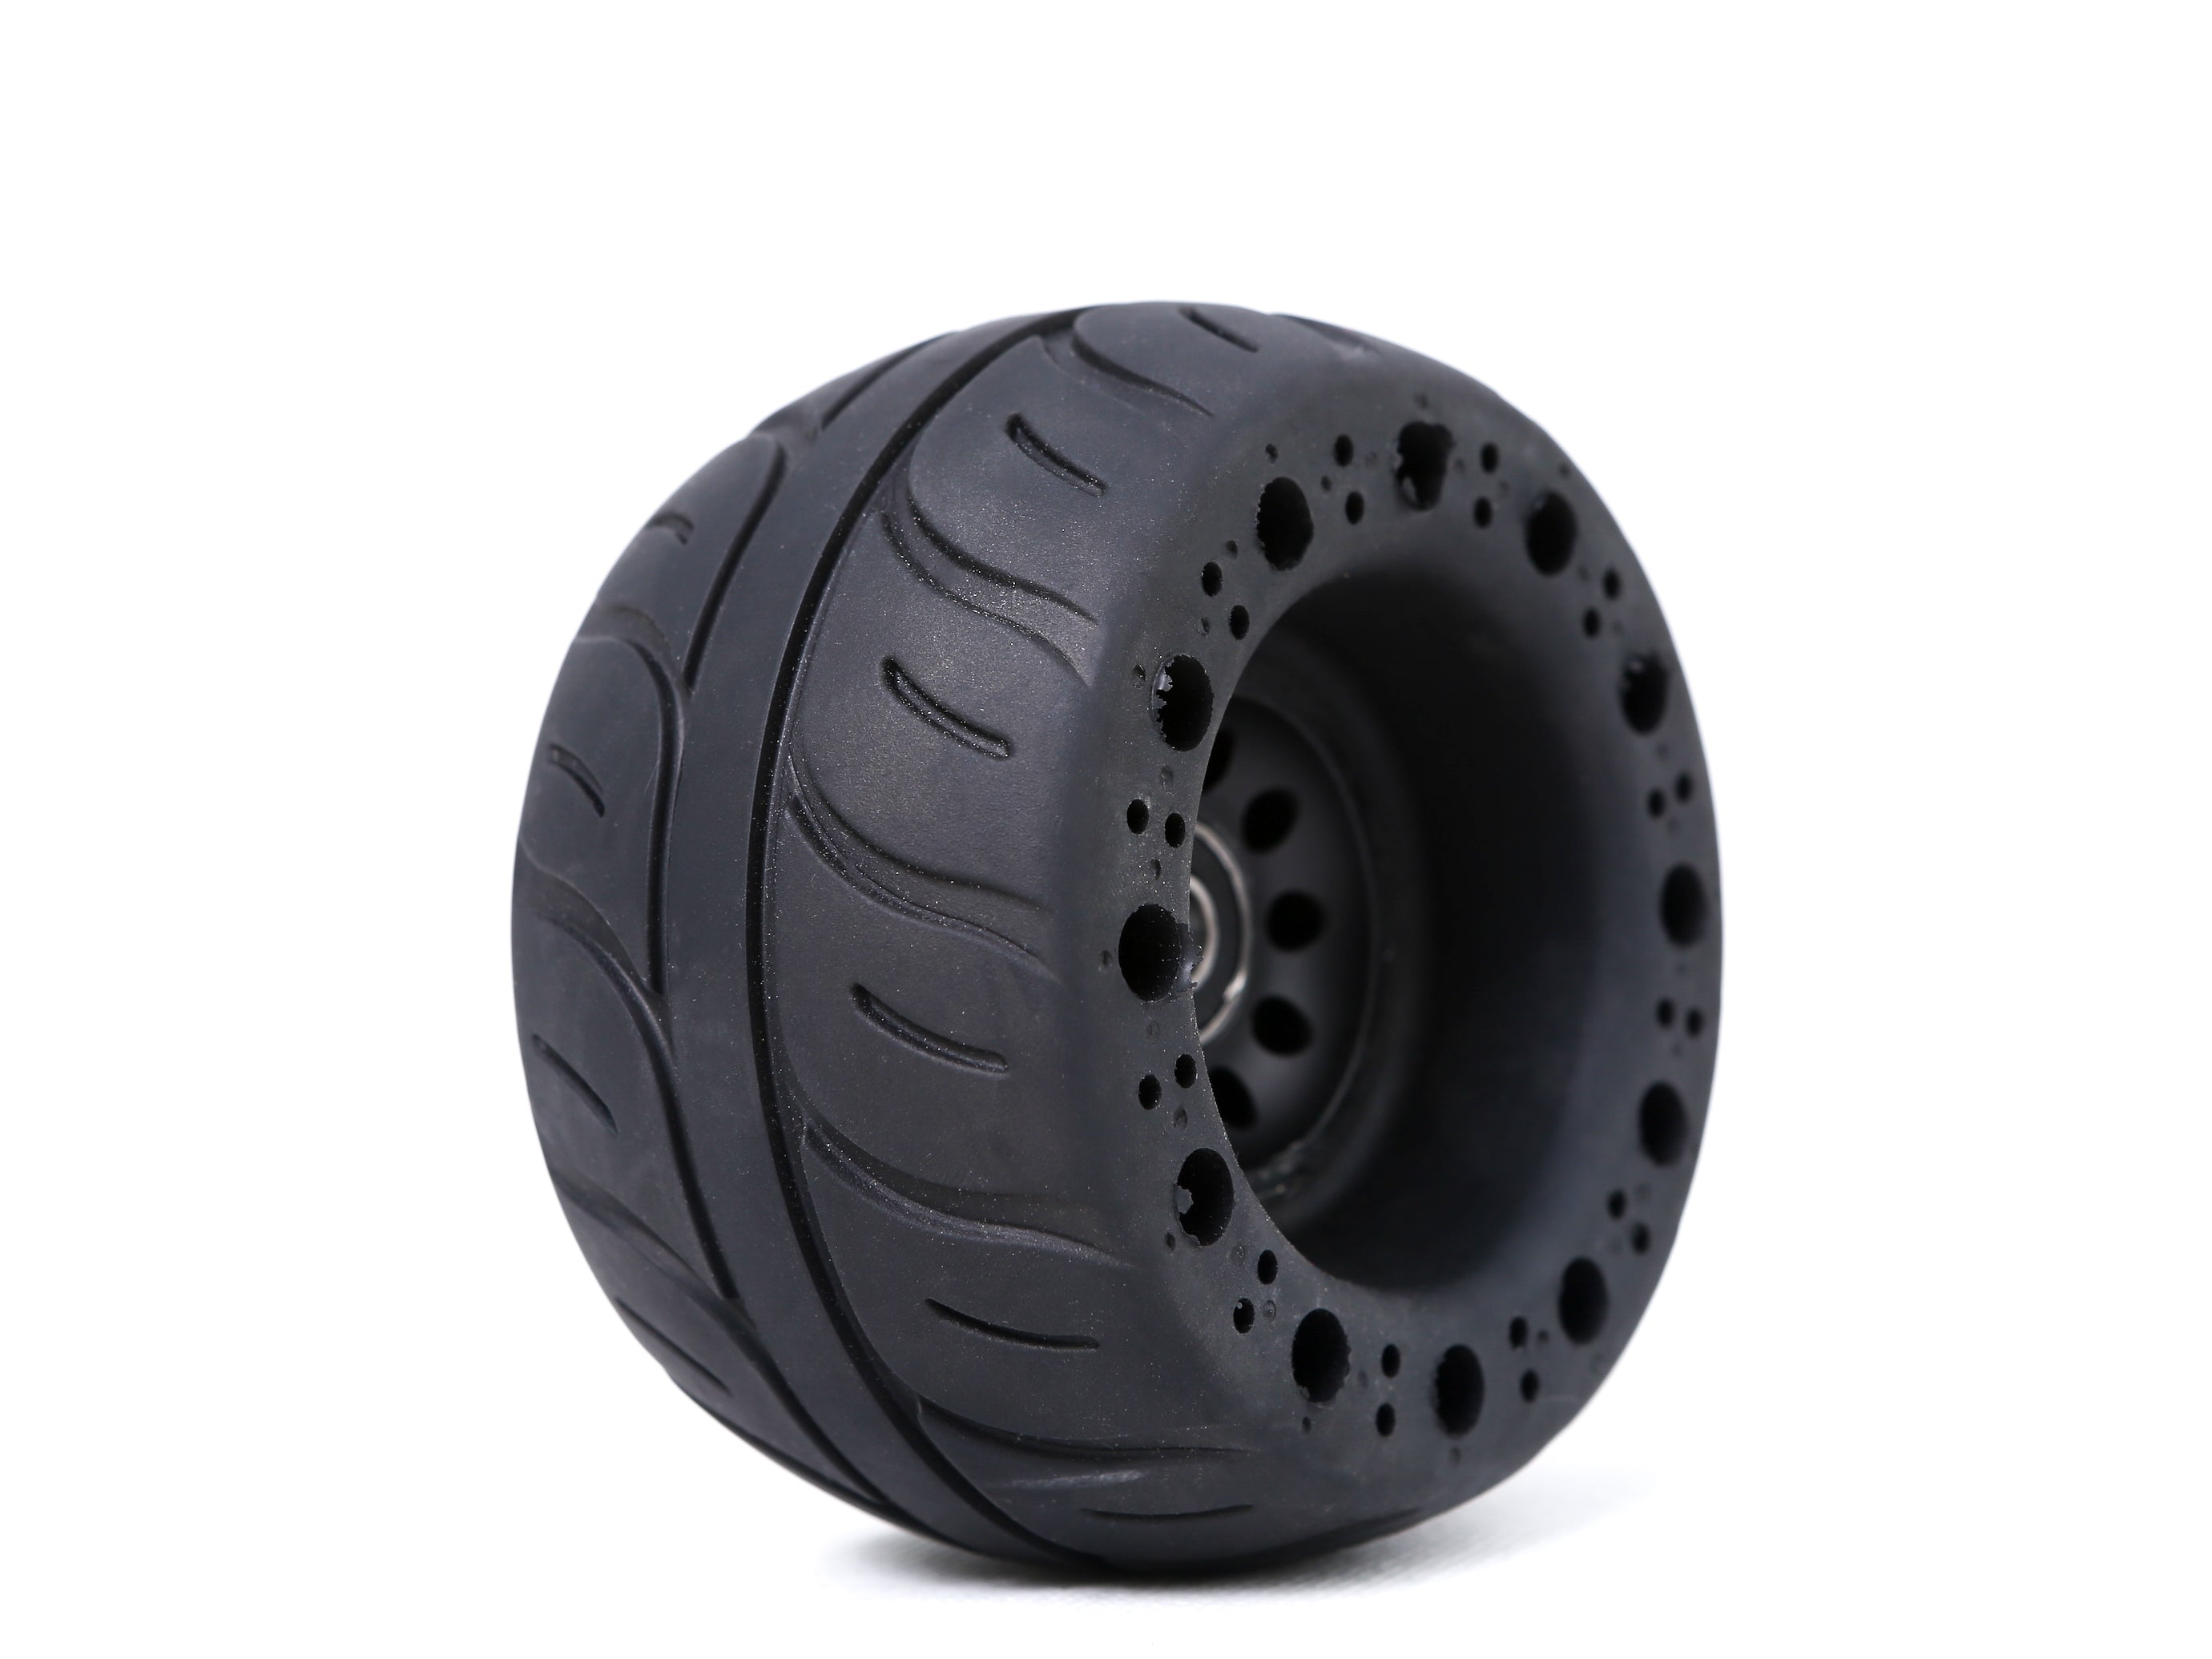 Electric Skateboard Rubber Wheels - 115mm ONSRA Wheels